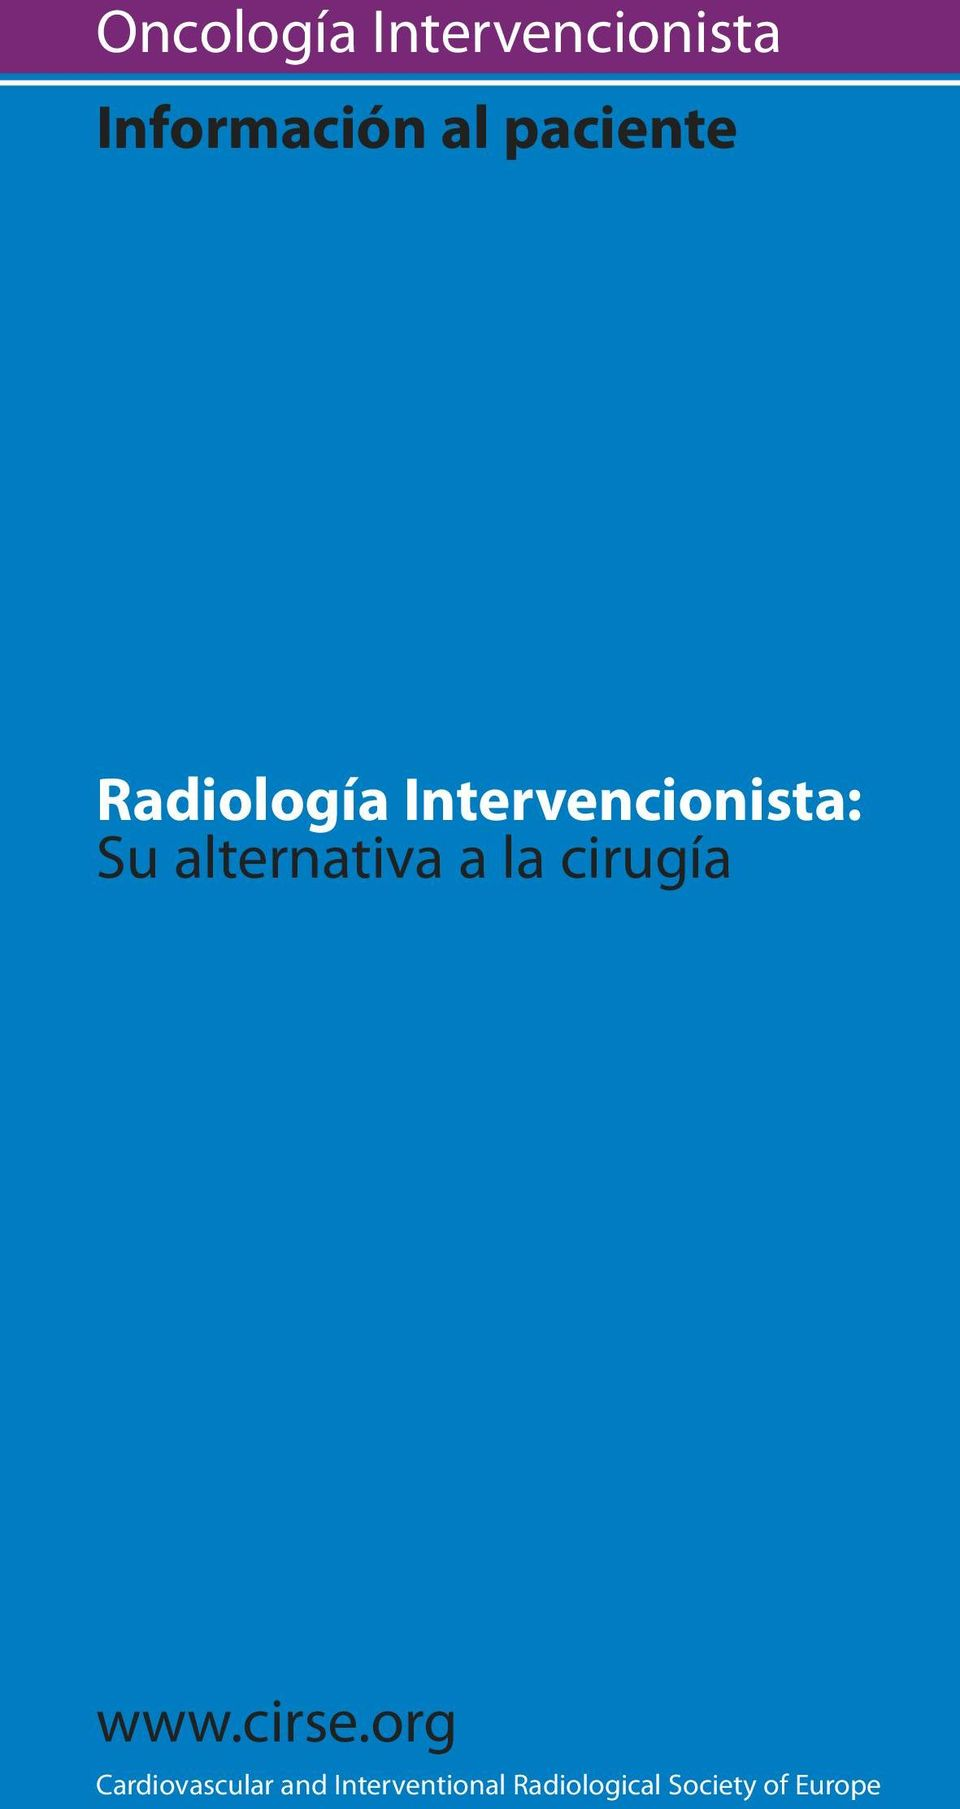 org Cardiovascular and Interventional Radiological Society of